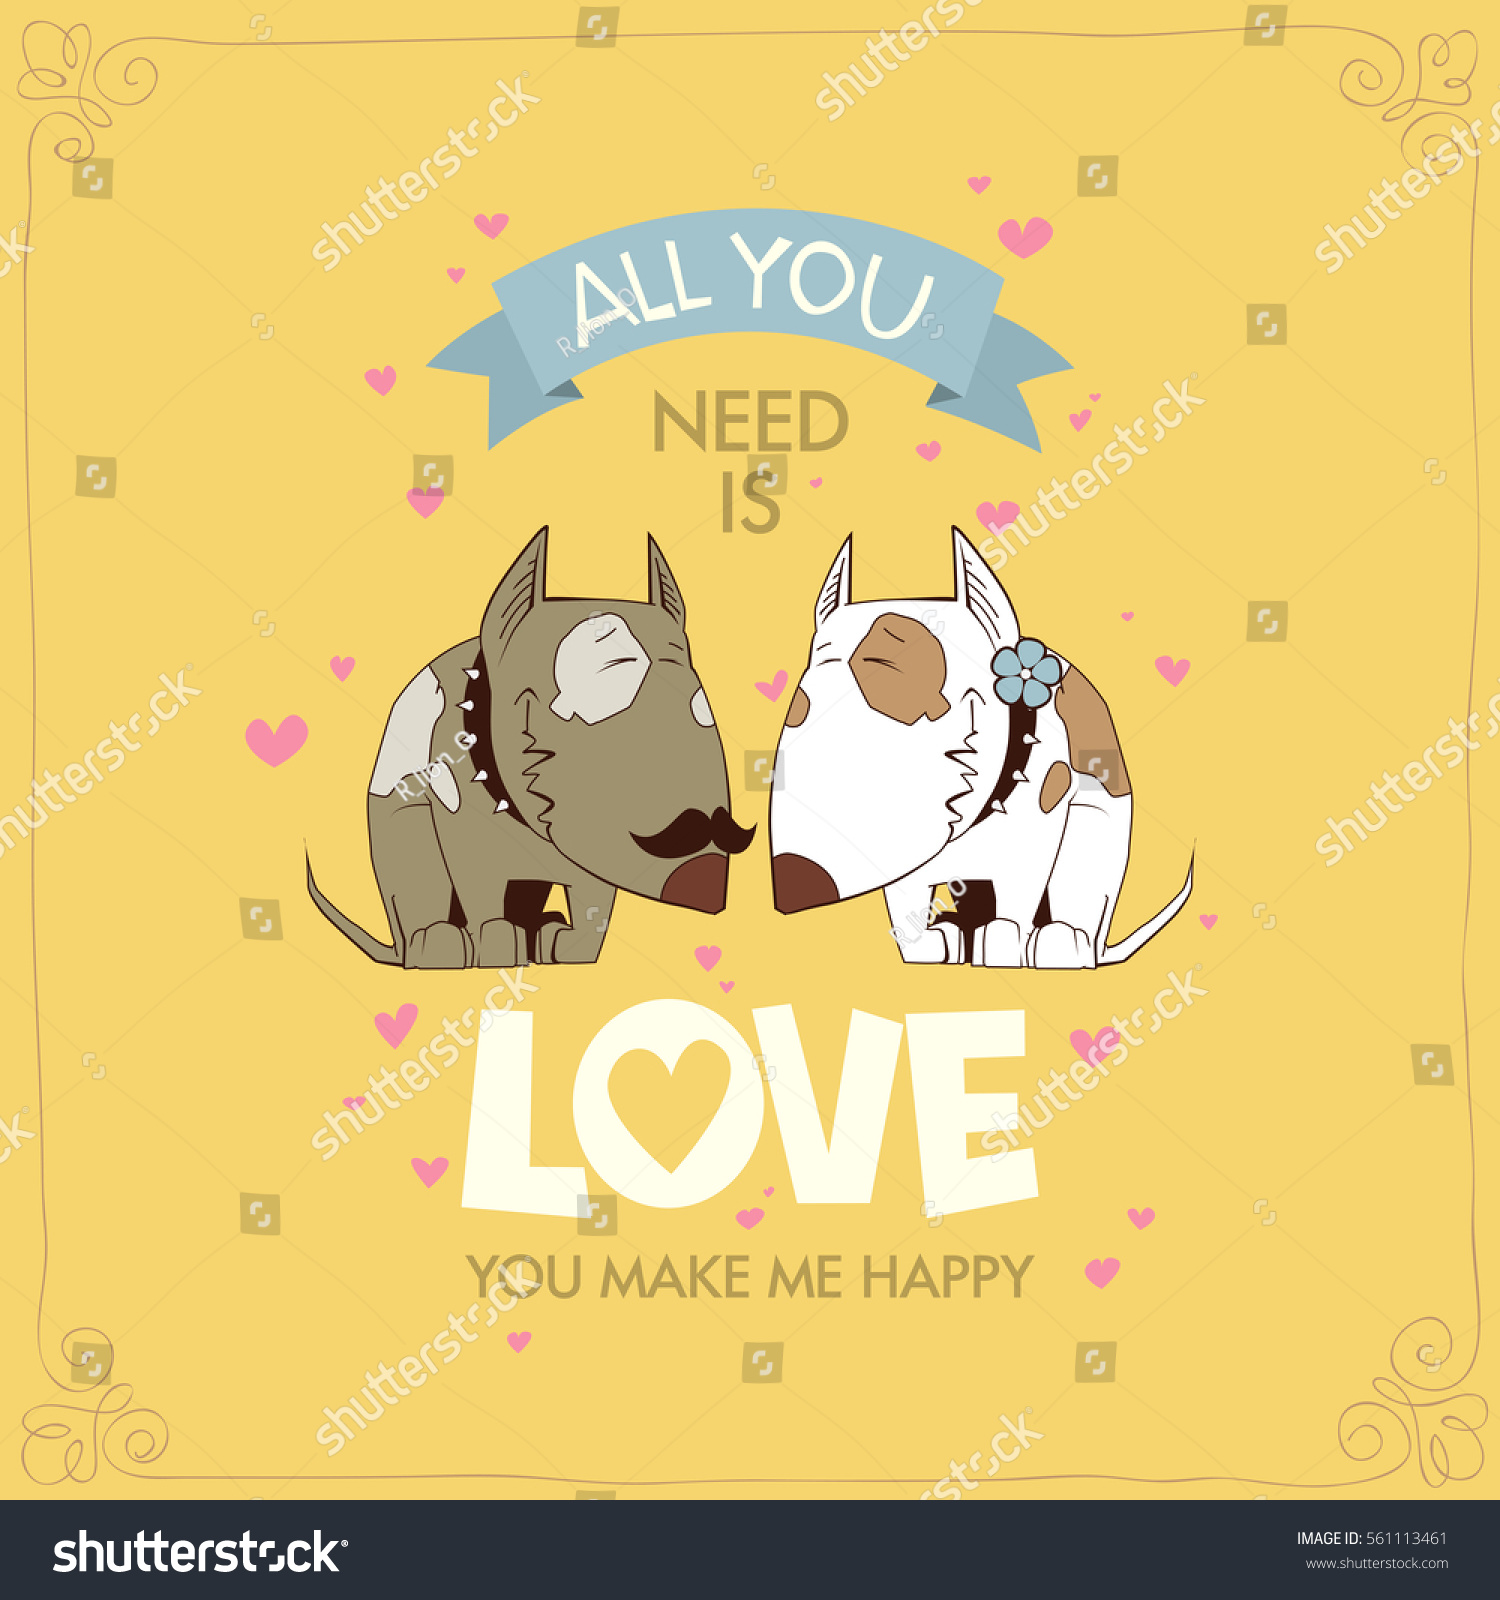 Romantic greeting card funny animal characters stock vector romantic greeting card with funny animal characters kristyandbryce Gallery